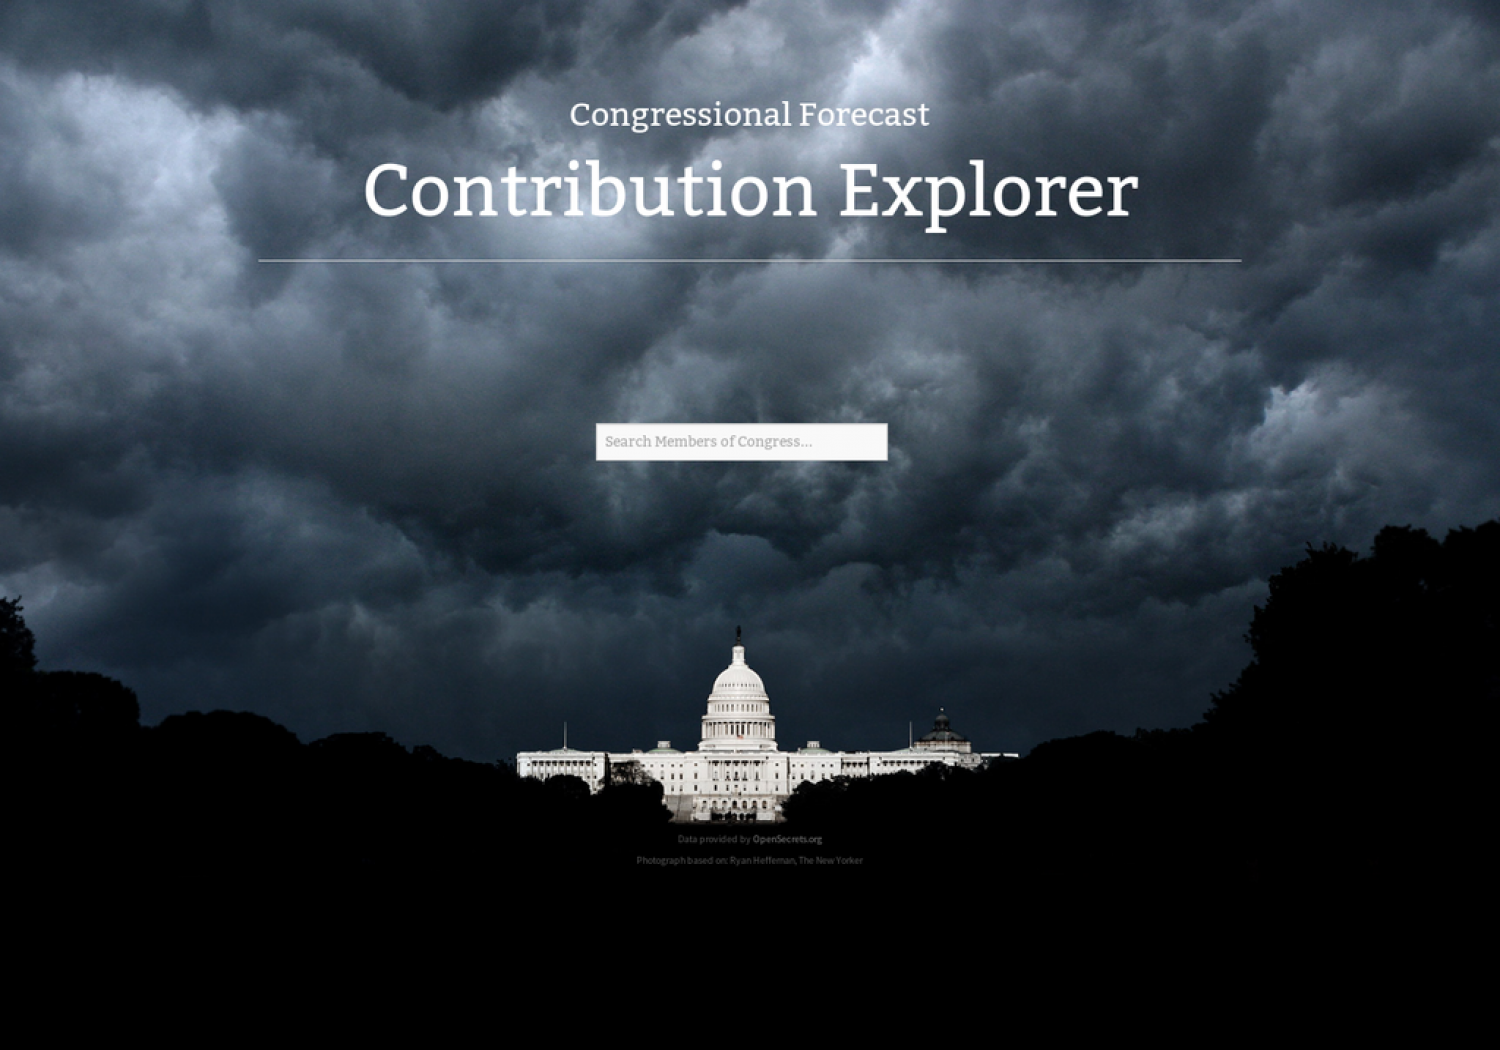 Congressional Forecast Contribution Explorer Infographic